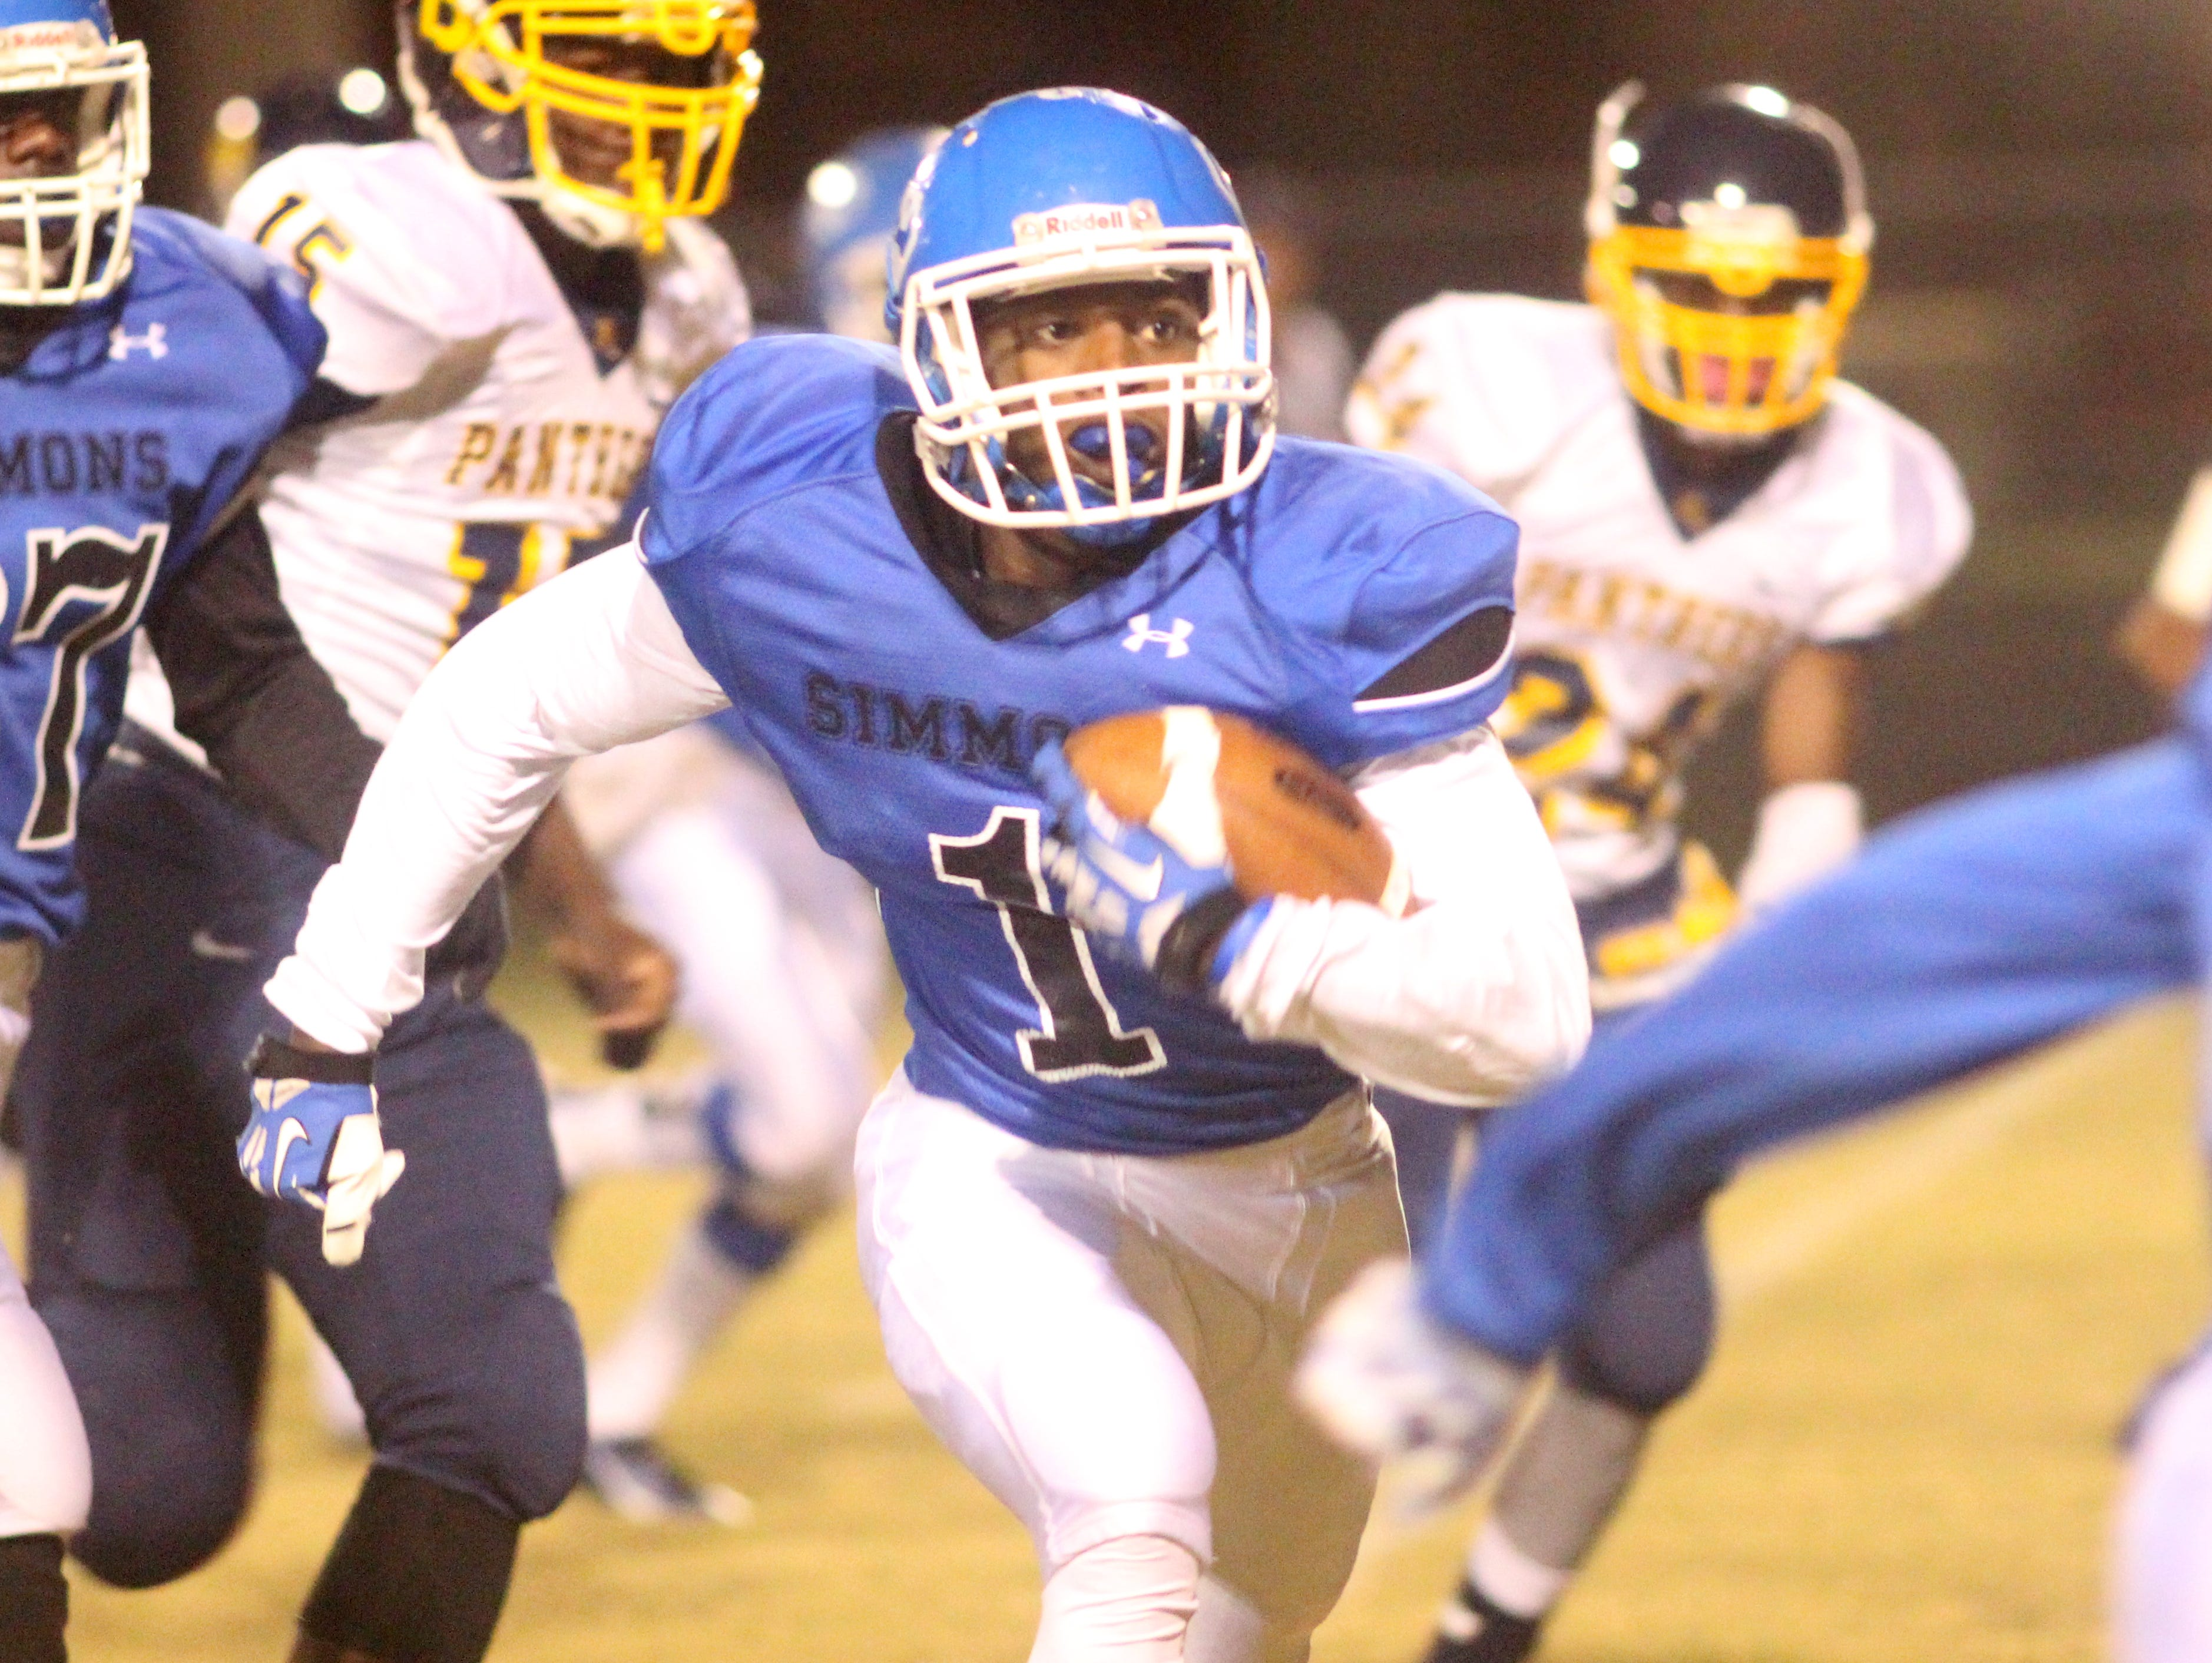 Nero Nelson has accounted for 32 touchdowns this season as he leads the Simmons Blue Devils into the Class 1A championship against the Resurrection Eagles on Friday.